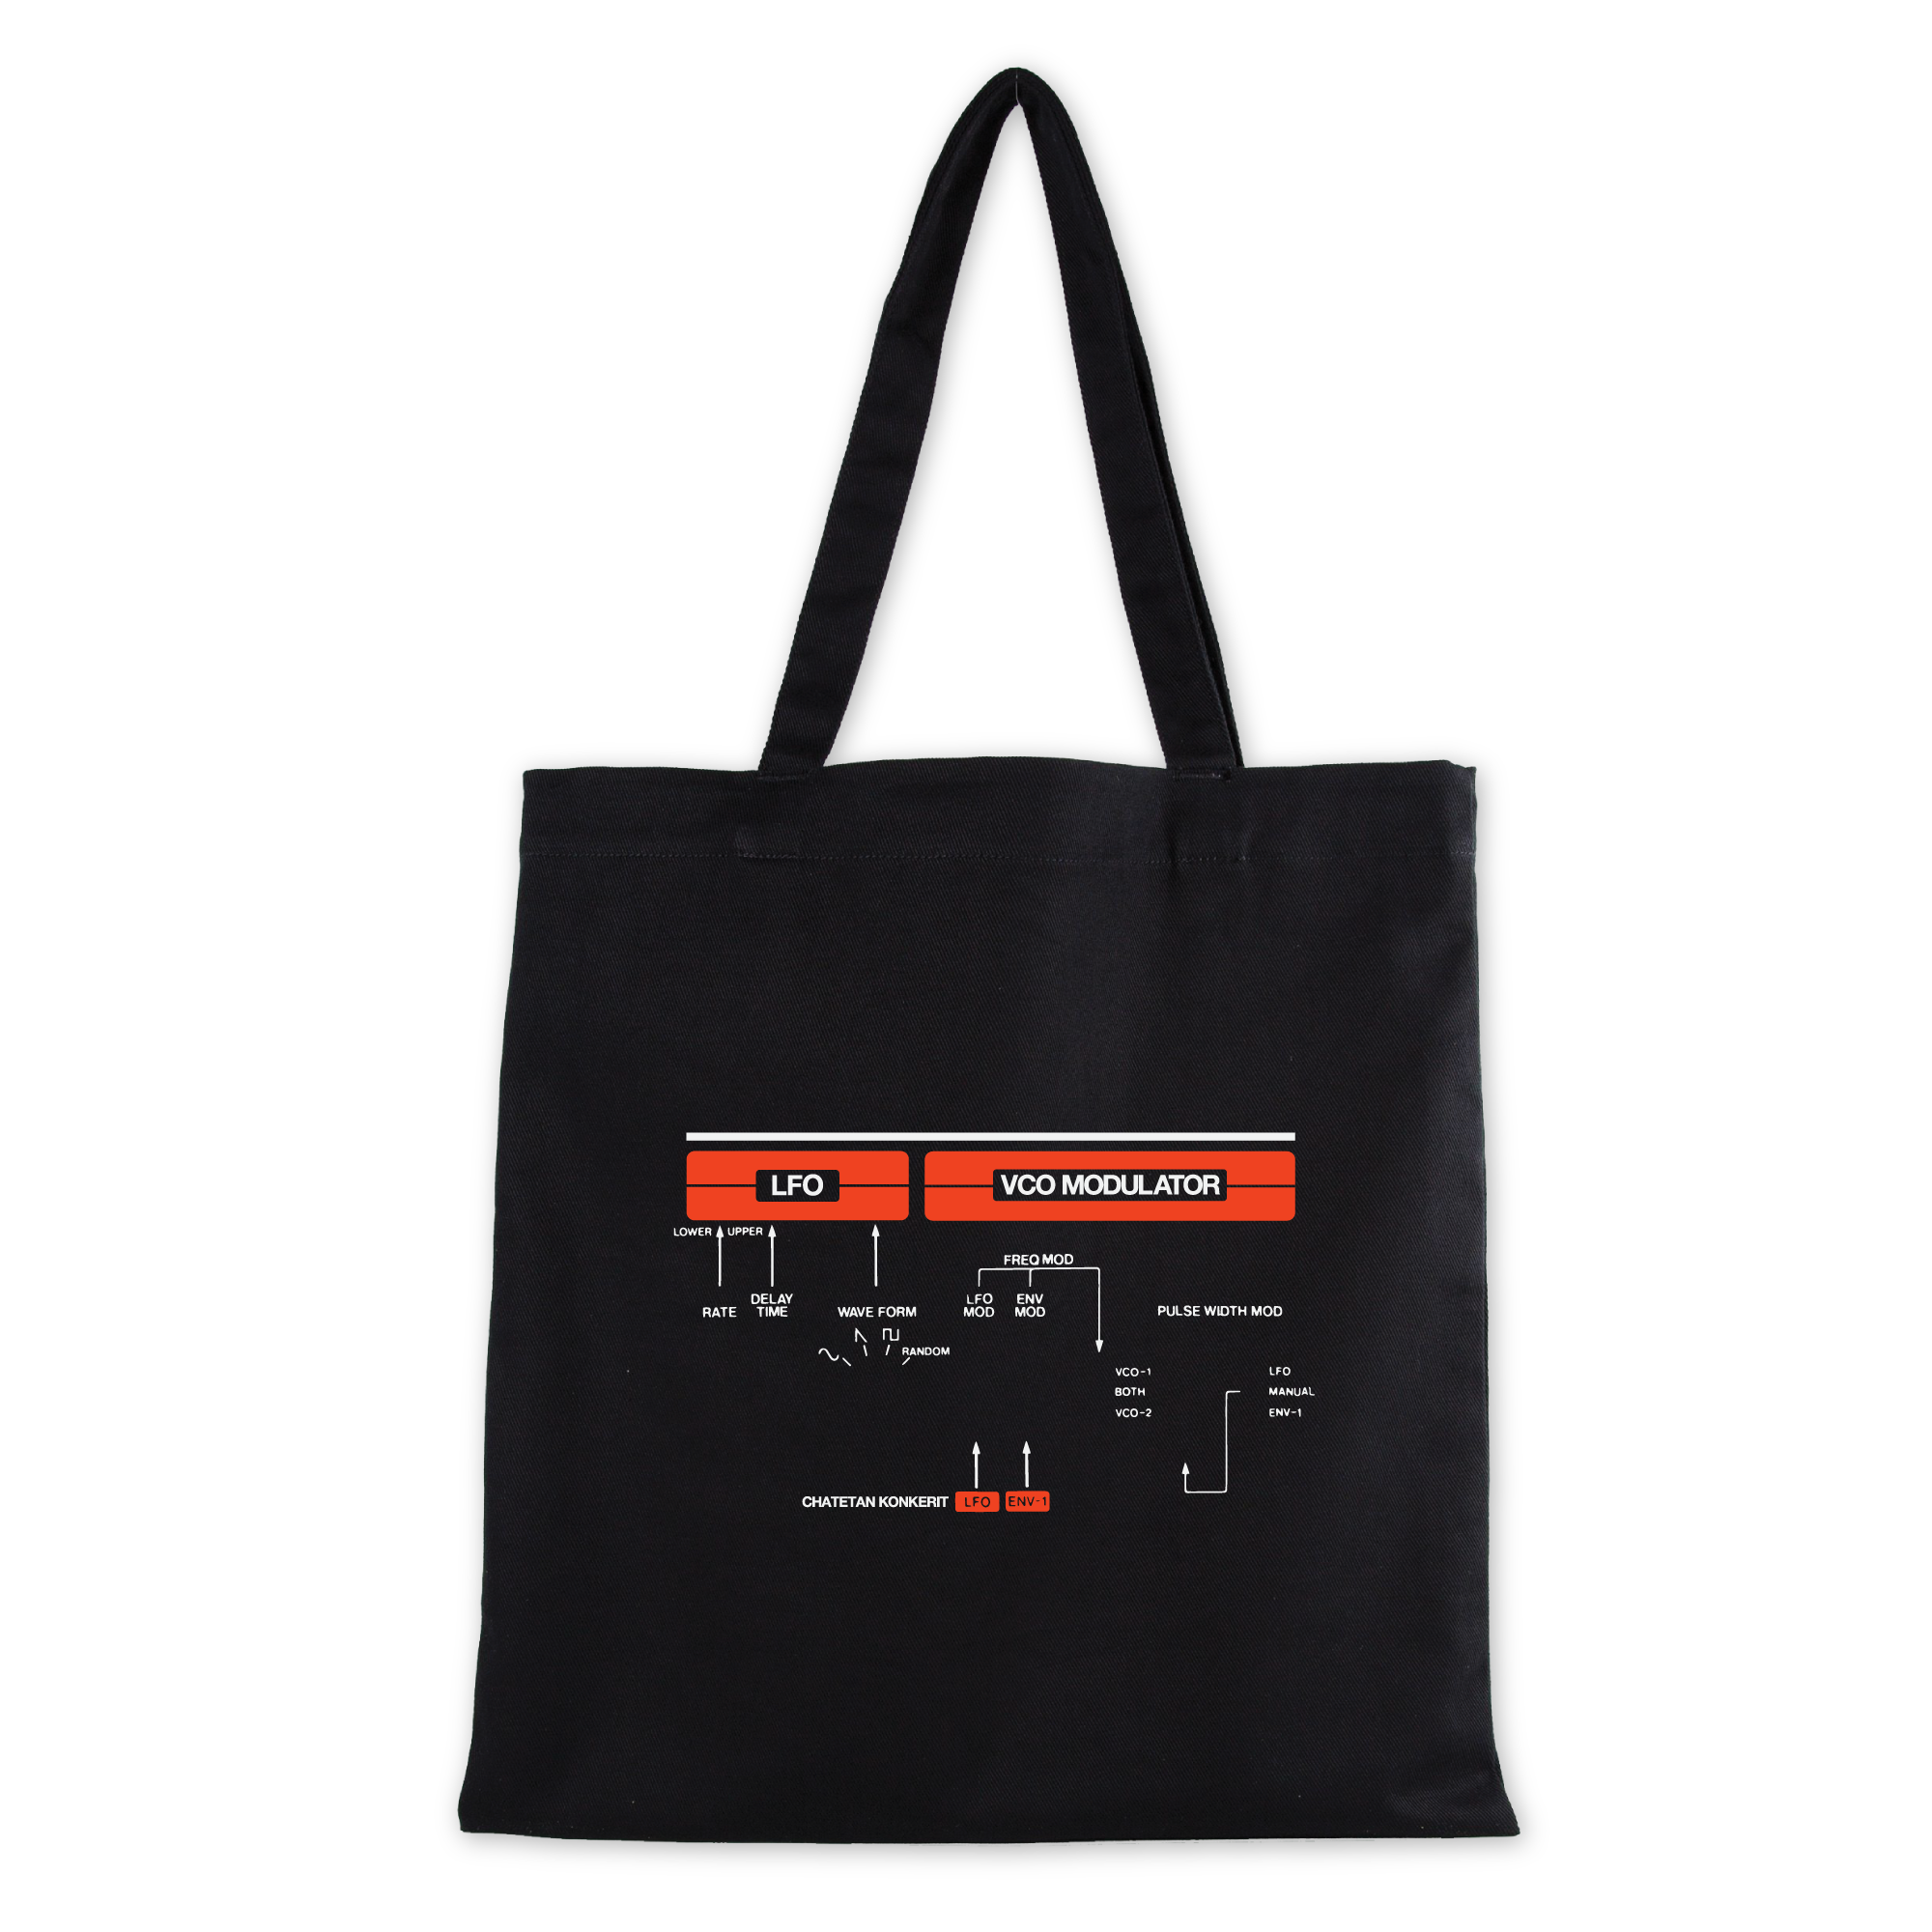 Tote-Bag-CK-Black.png